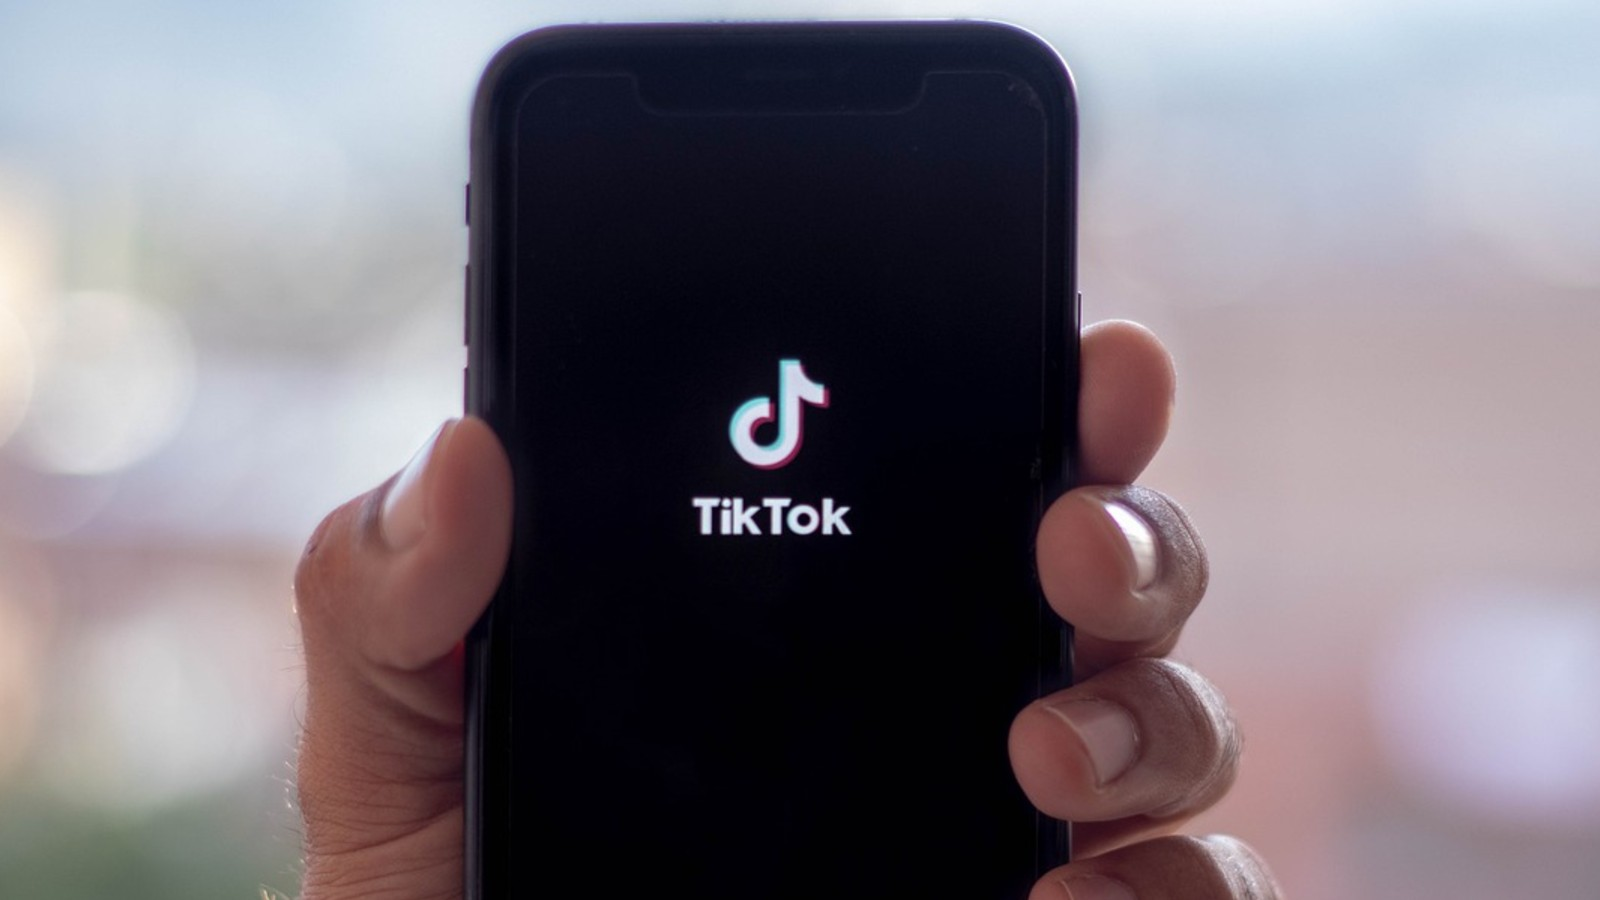 The TikTok launch screen phone held by a hand